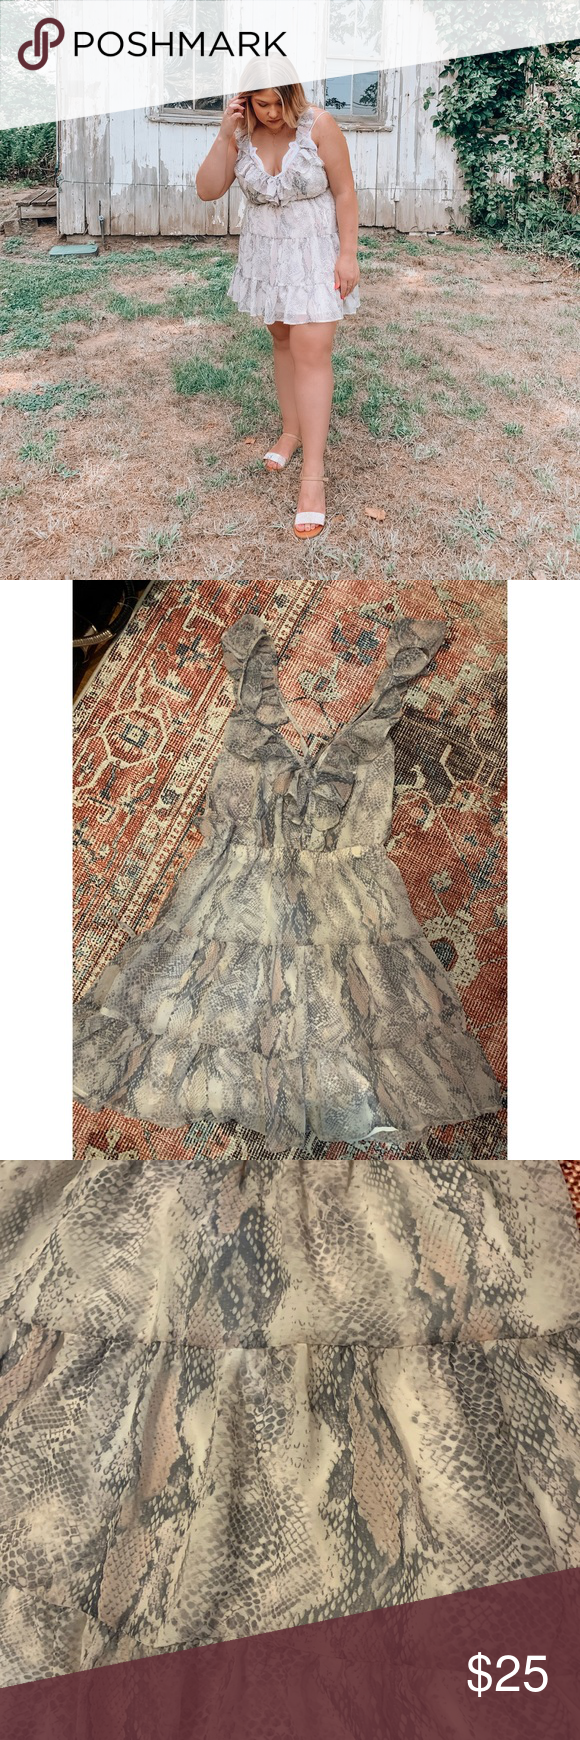 Only worn once! Has elastic waist, very stretchy Ruffle snake print dress. Elastic waist ,backless. Pair with a leather jacket and boots perfect for the colder months Red Dress Boutique Dresses Mini #snakeprintbootsoutfit